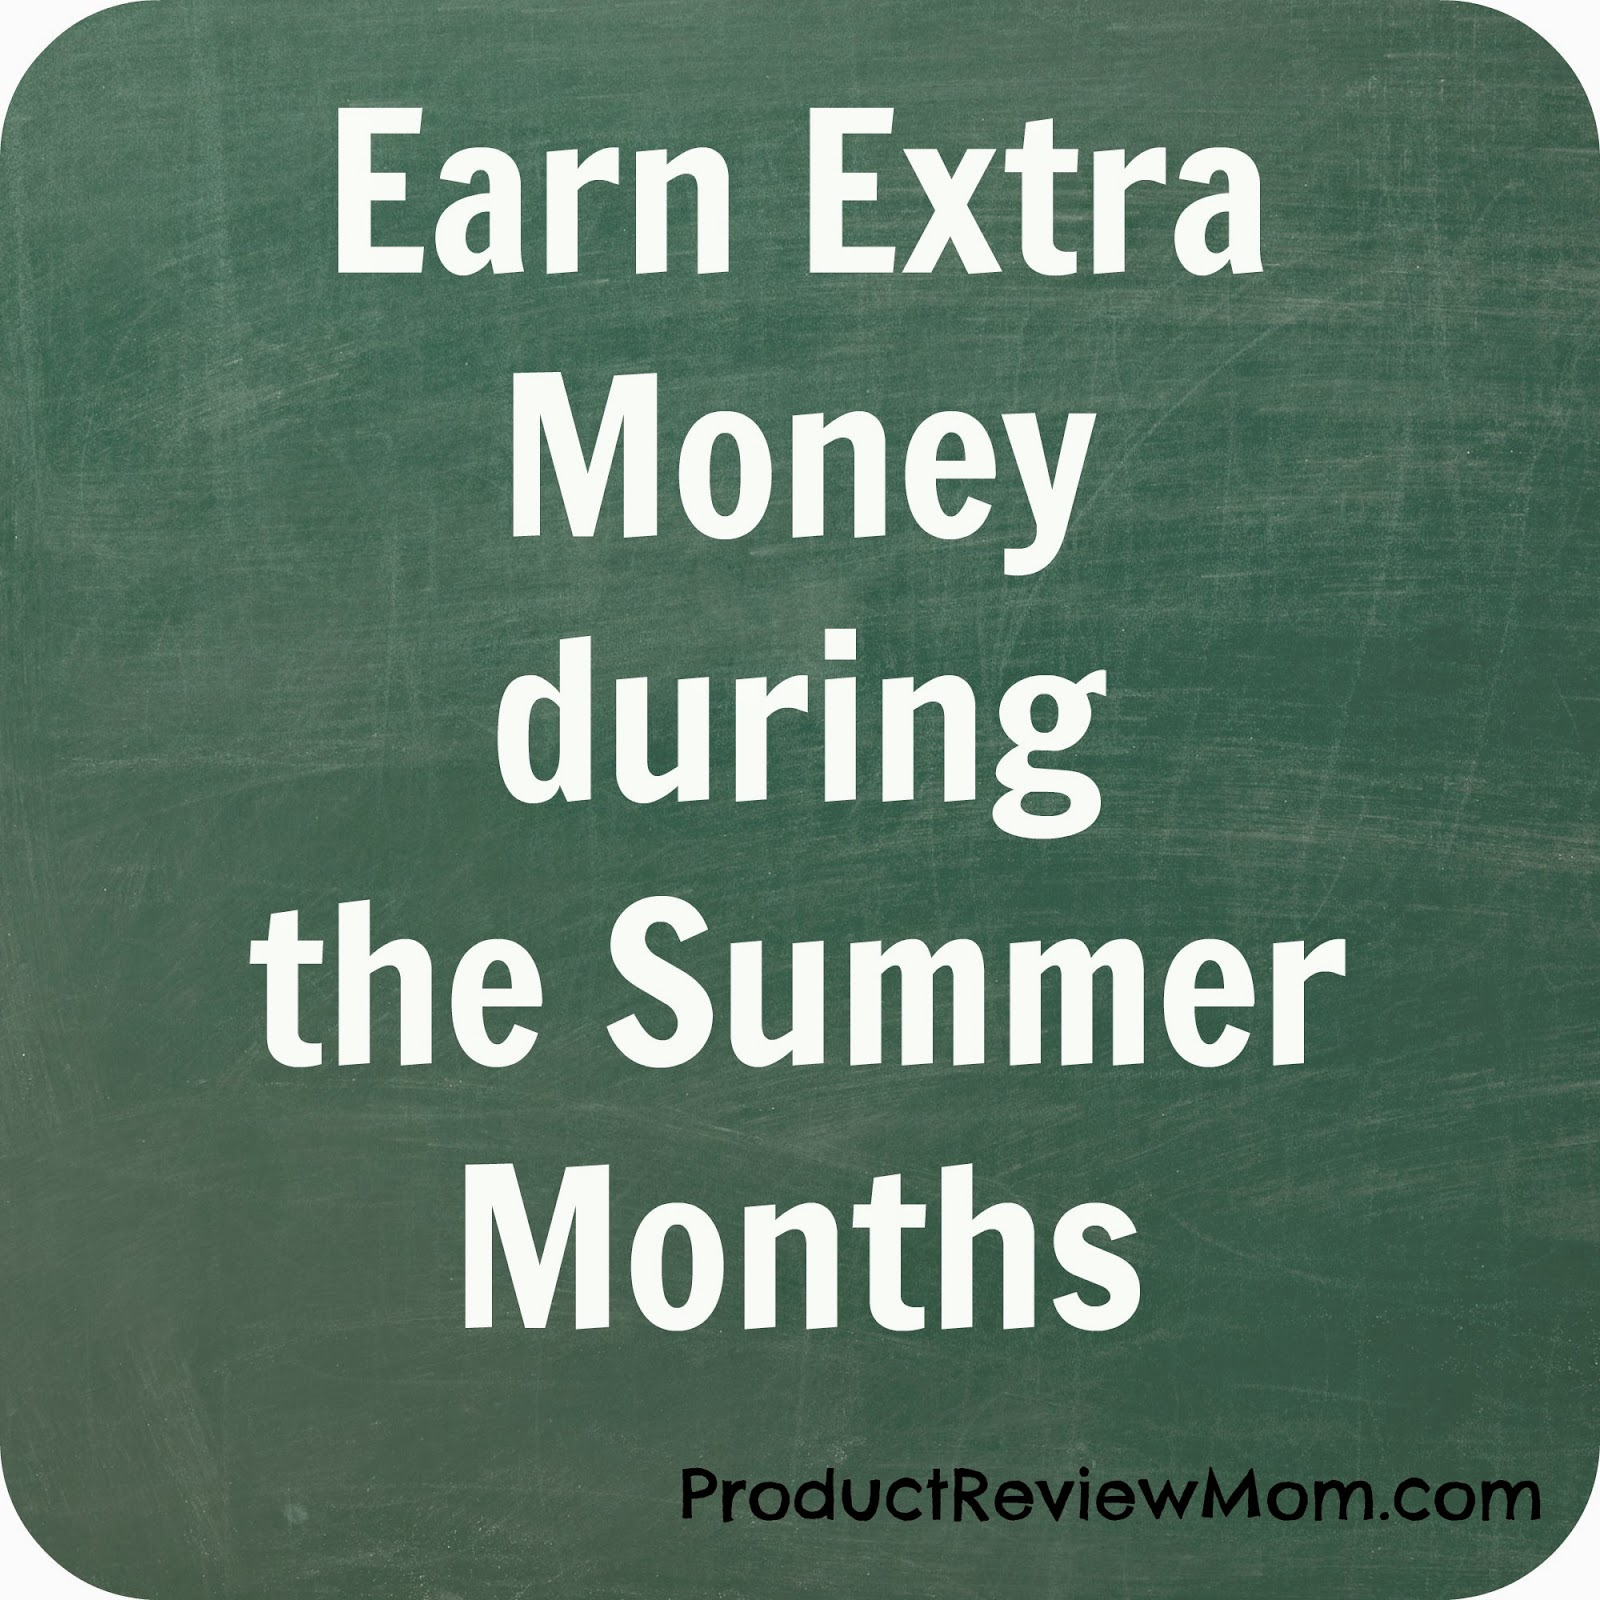 Earn Extra Money during the Summer Months  via www.productreviewmom.com